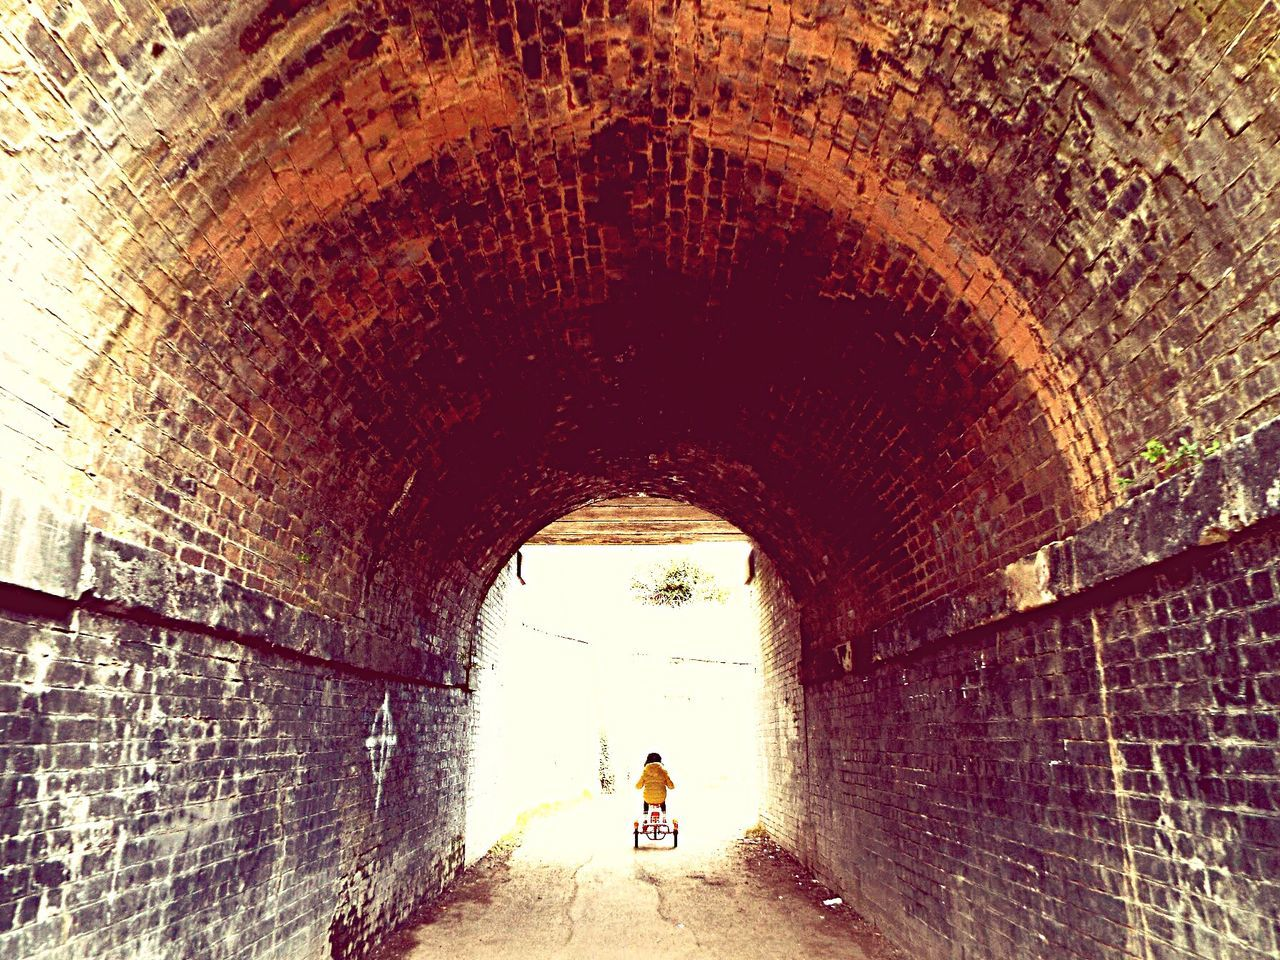 Railwaybridge Sunday Afternoon SundayFunday Walking The Dog Playing With Colours Playingwithfilters Tunnel People Springtime Contrast Retro Brick History Train EyeEm Tunneloflove Happymoments Memories